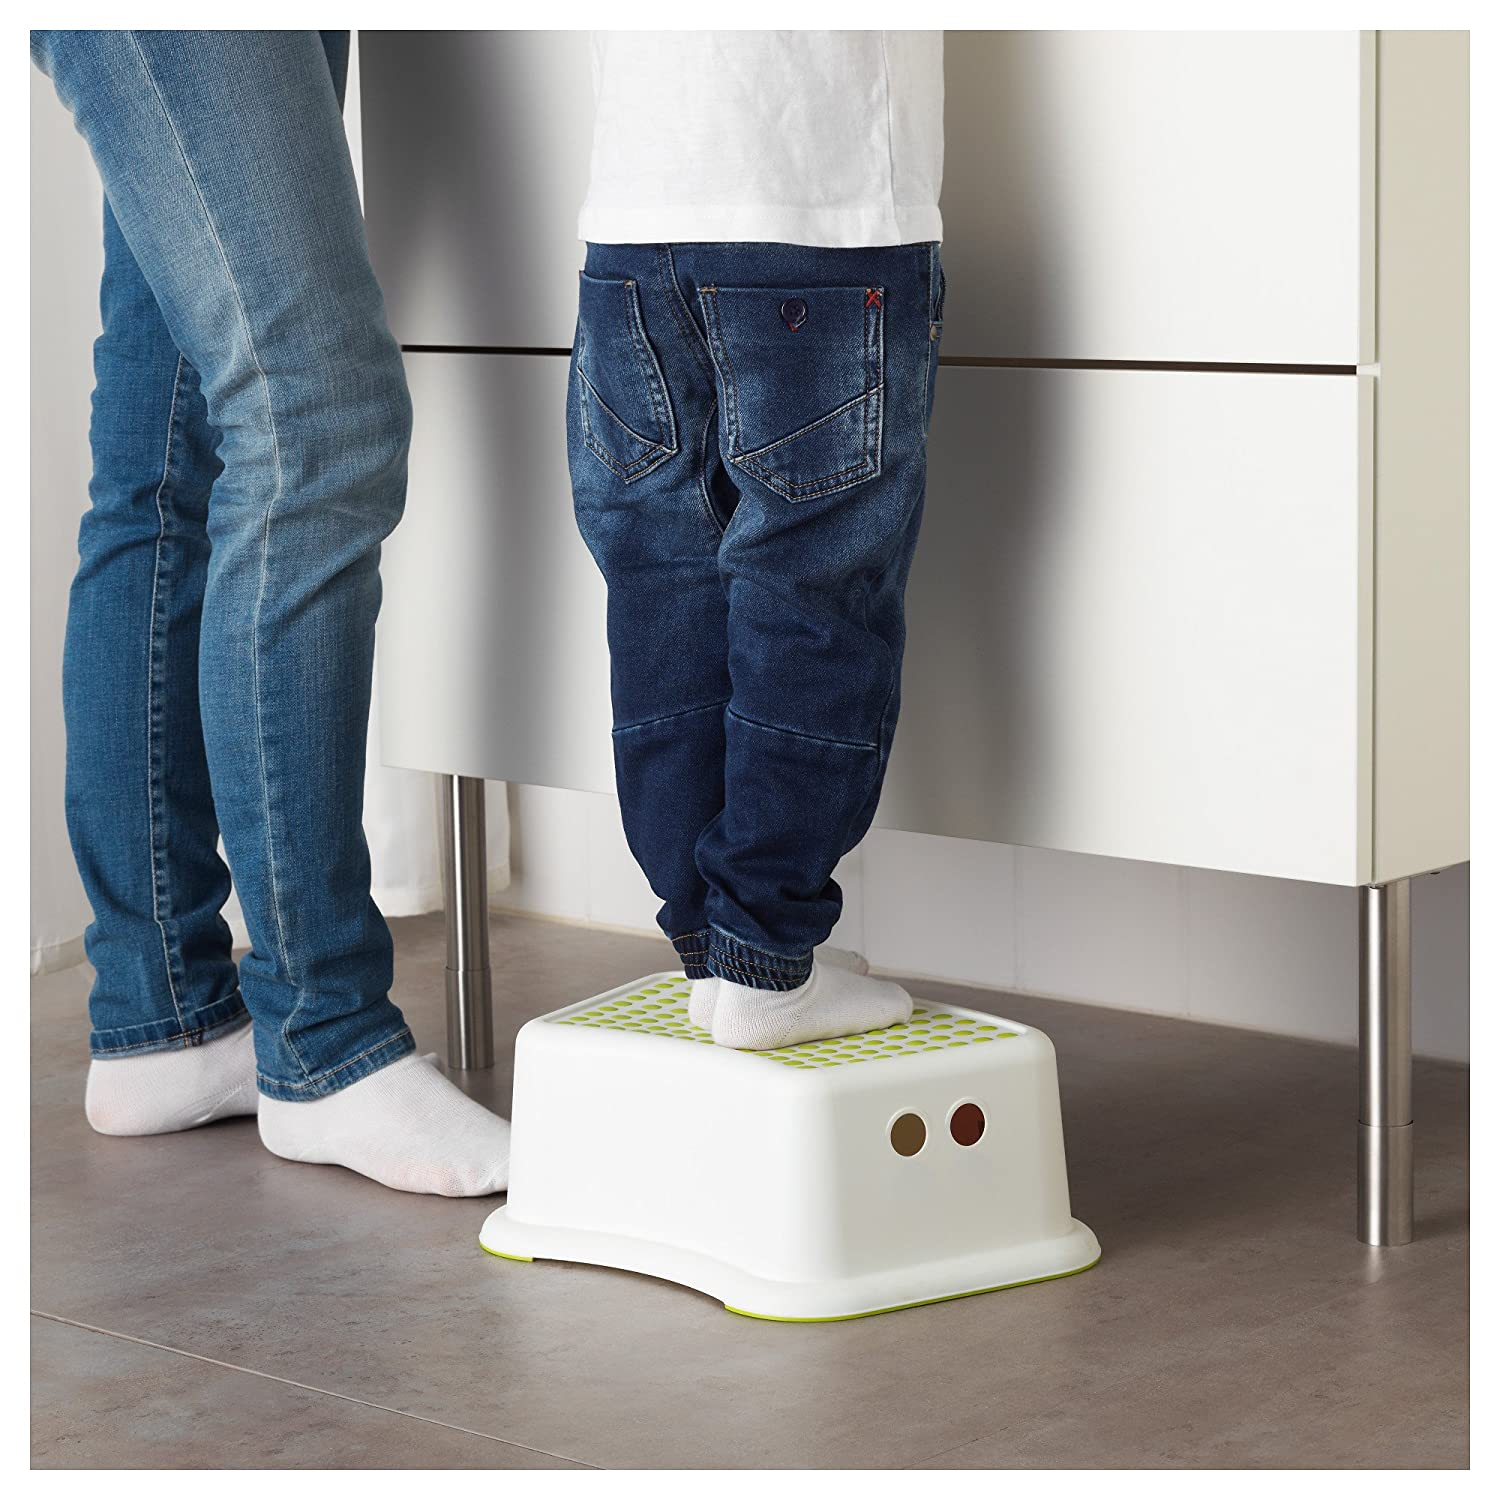 IKEA CHILDS FOOT STOOL / STEP WITH ANTI-SLIP FÖRSIKTIG Amazon.co.uk Baby & IKEA CHILDS FOOT STOOL / STEP WITH ANTI-SLIP FÖRSIKTIG: Amazon.co ... islam-shia.org